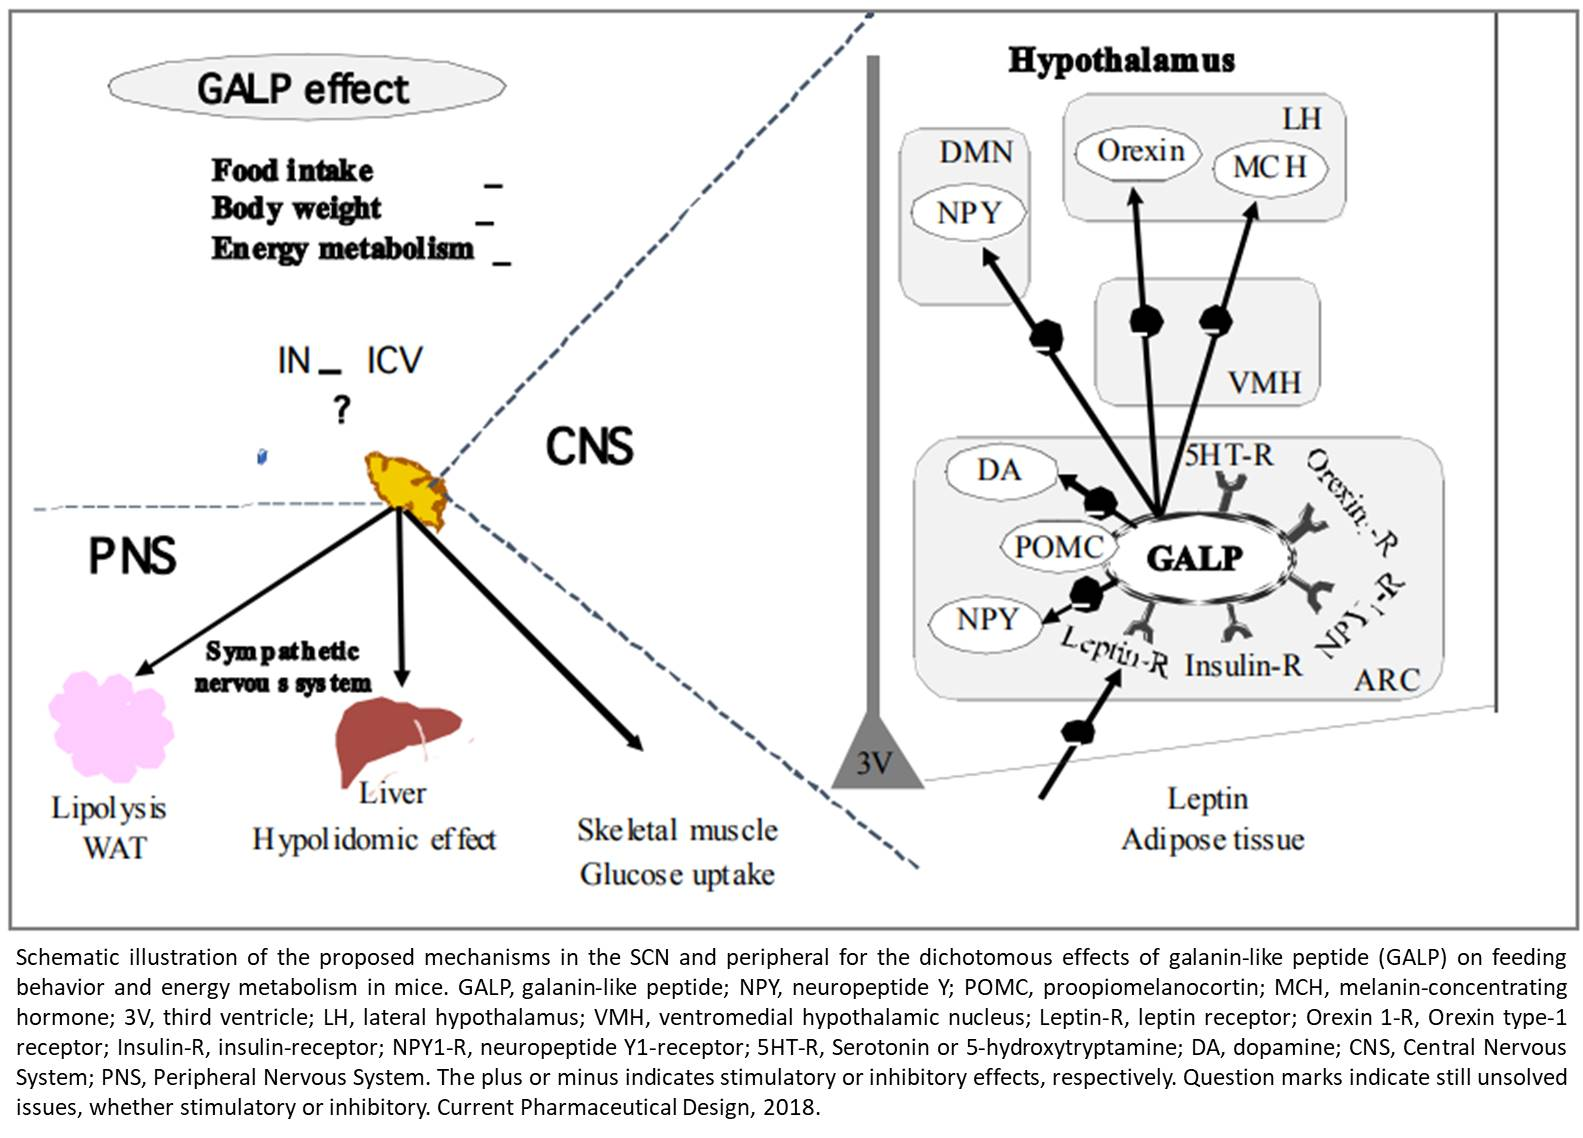 Regulation of feeding behavior and energy metabolism by galanin-like peptide (GALP)